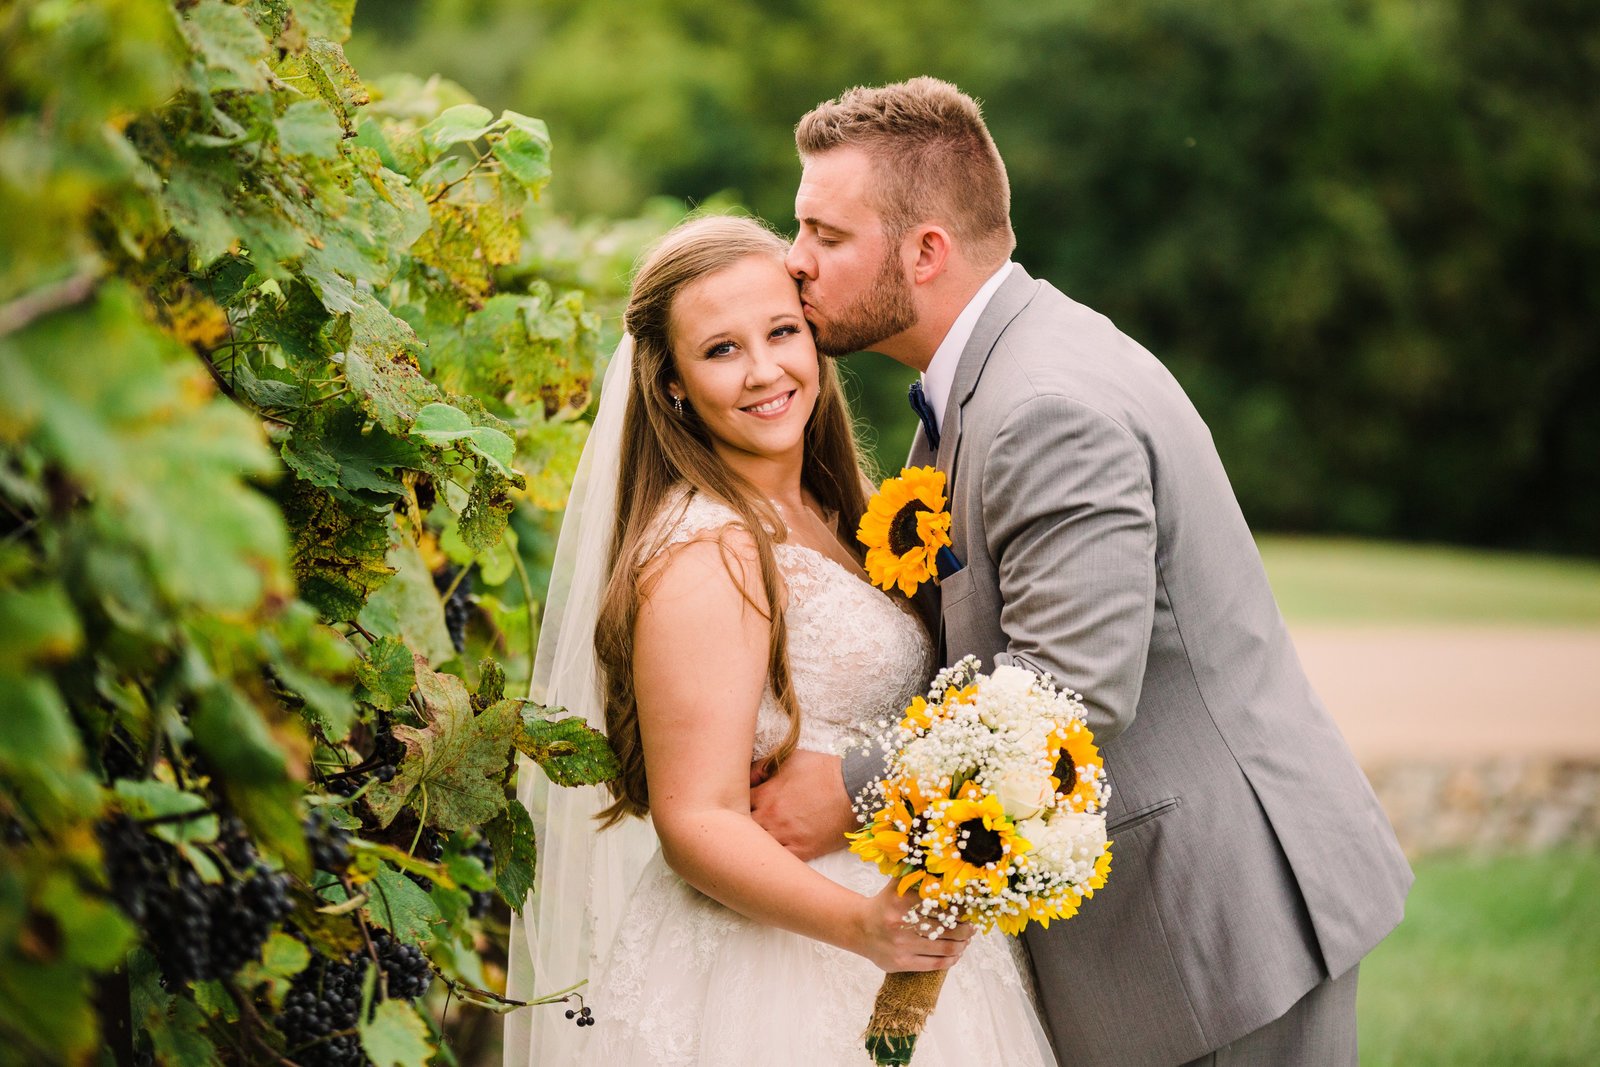 Bride and Groom, Whitney and Derik, pose next to full green vineyards at Chaumette Winery.